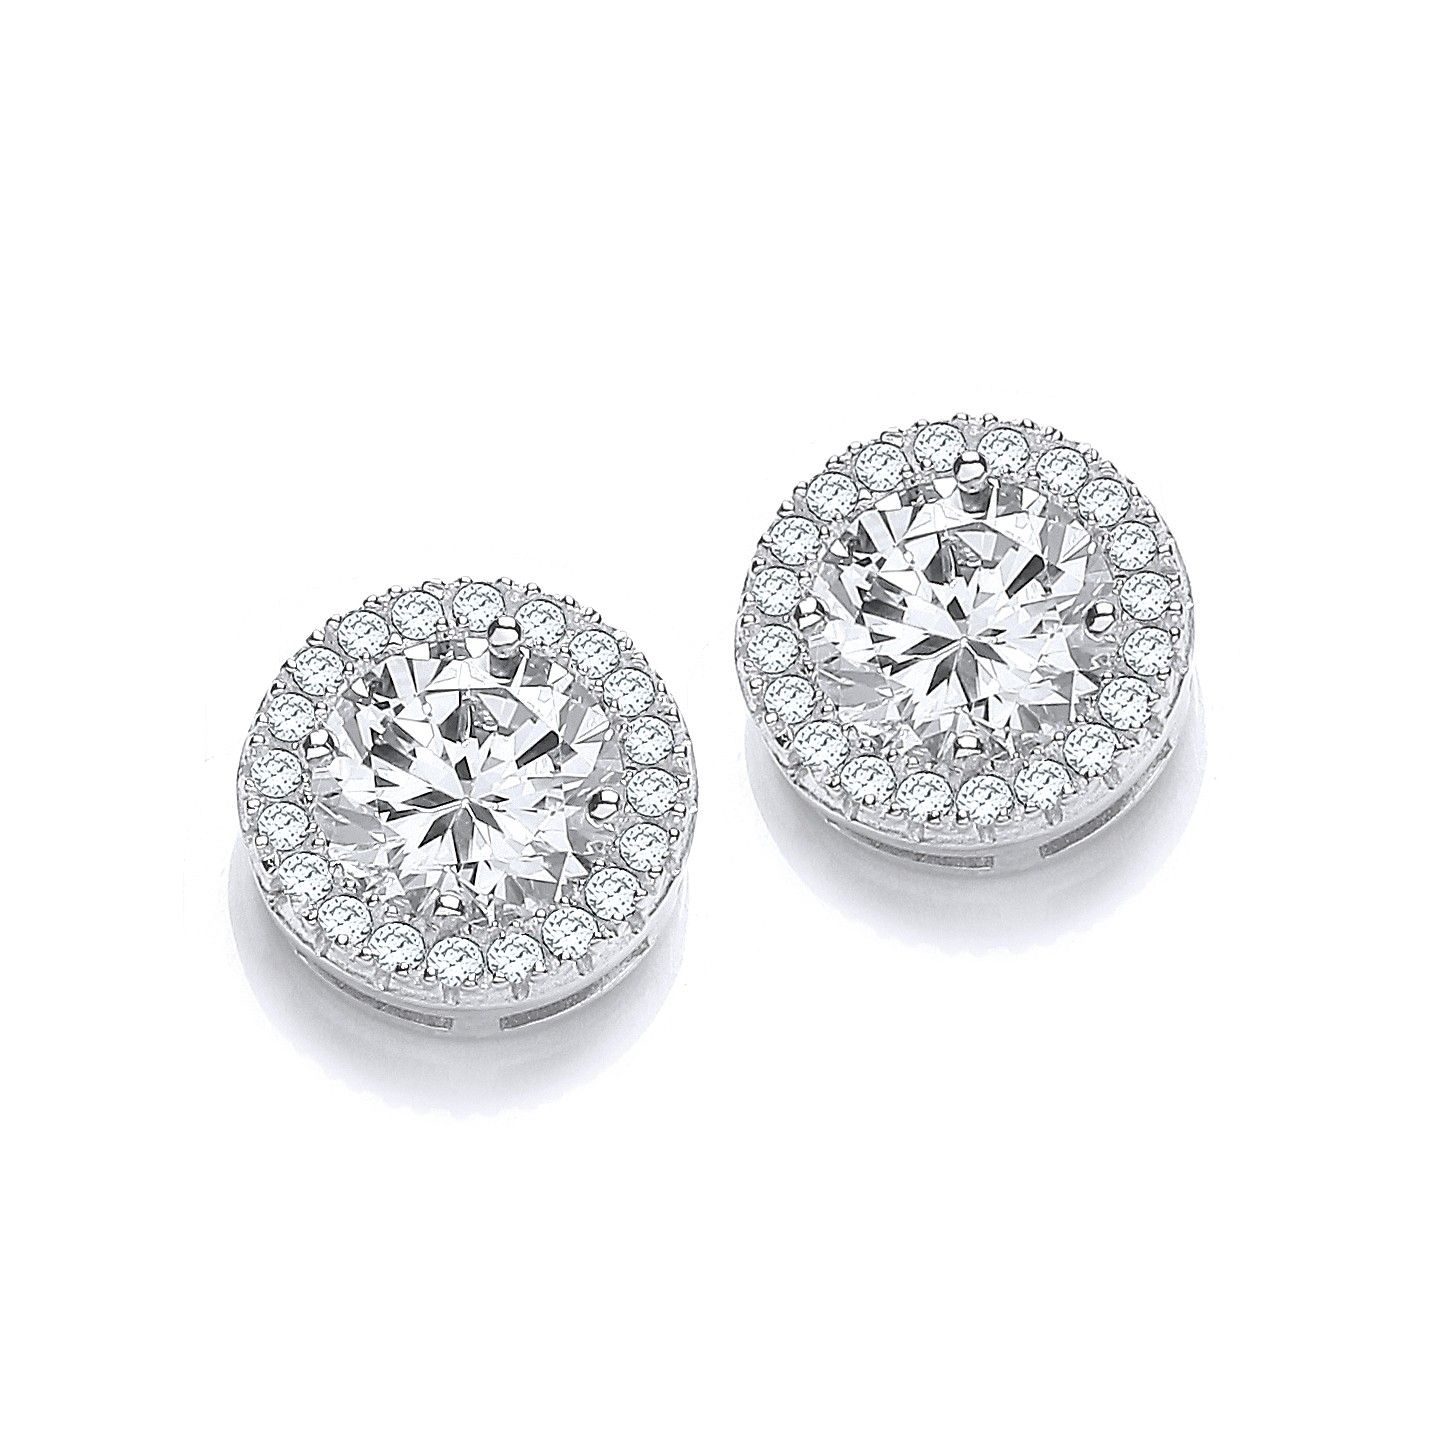 Stud Silver Earrings Set With CZs Cubic Zirconia Silver